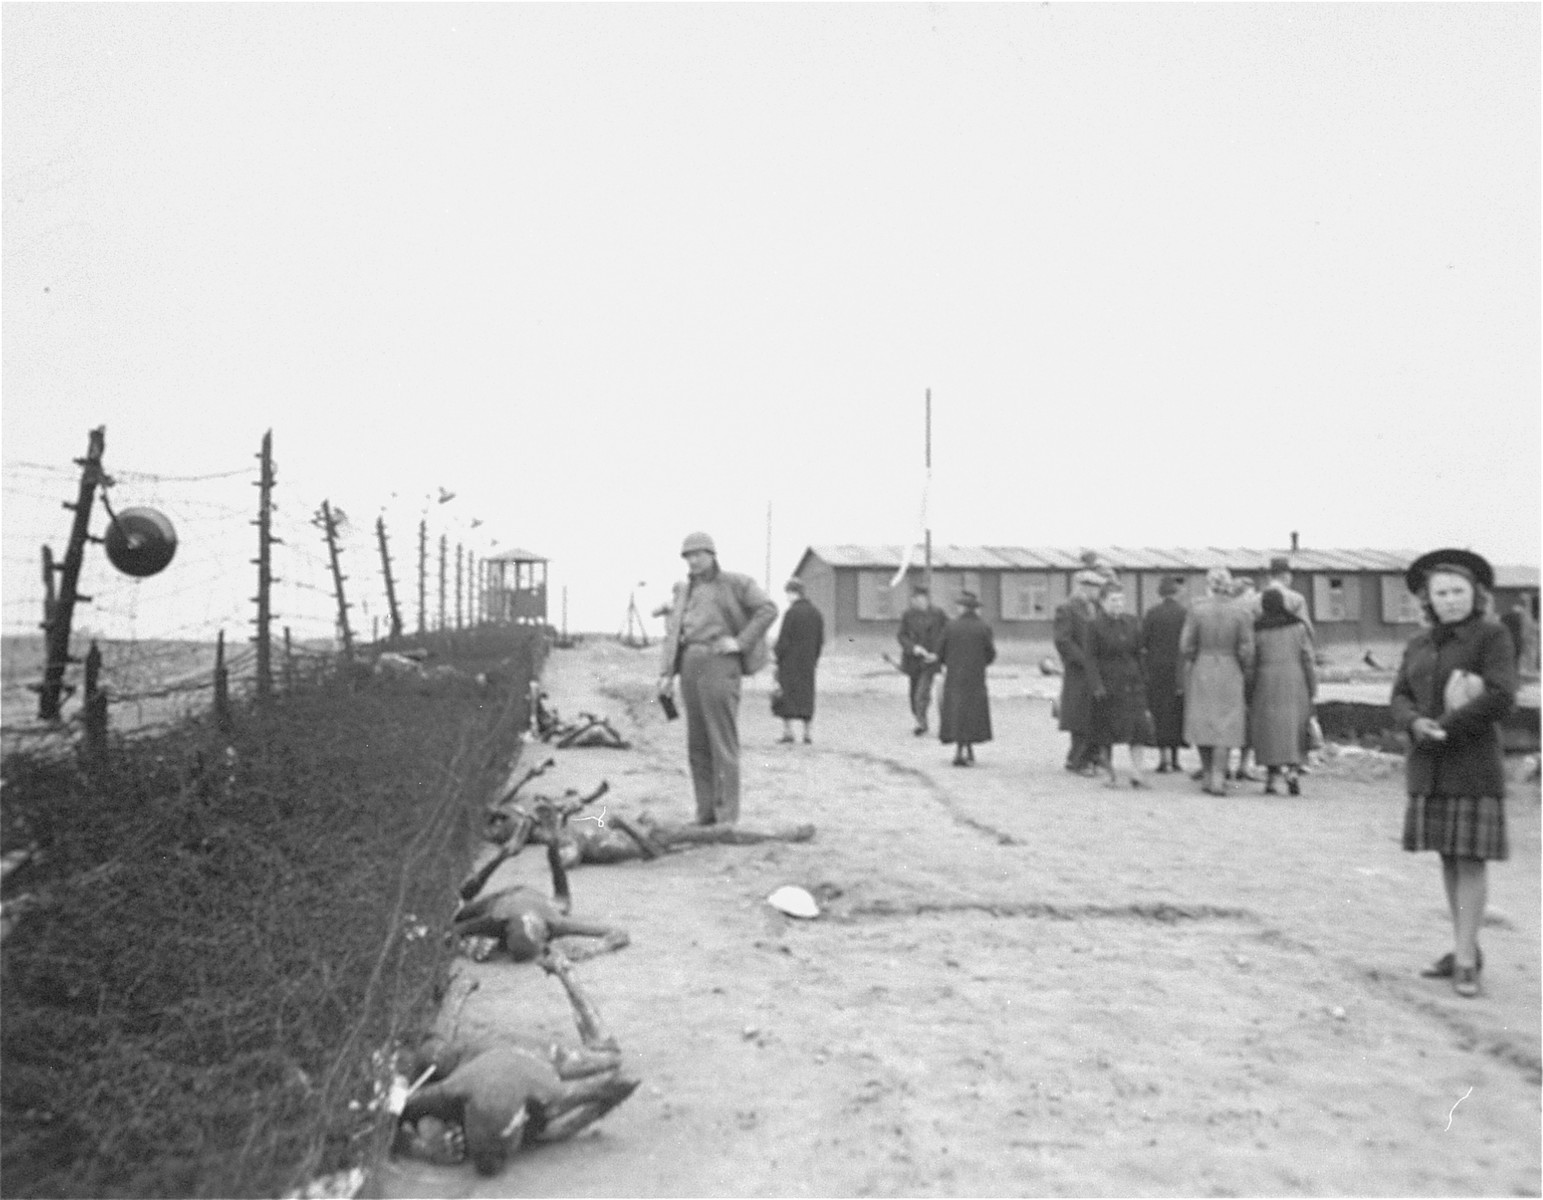 An American soldier and German civilians forced to come to the camp, examine the corpses of prisoners murdered by the SS during the evacuation of the Leipzig-Thekla concentration camp.